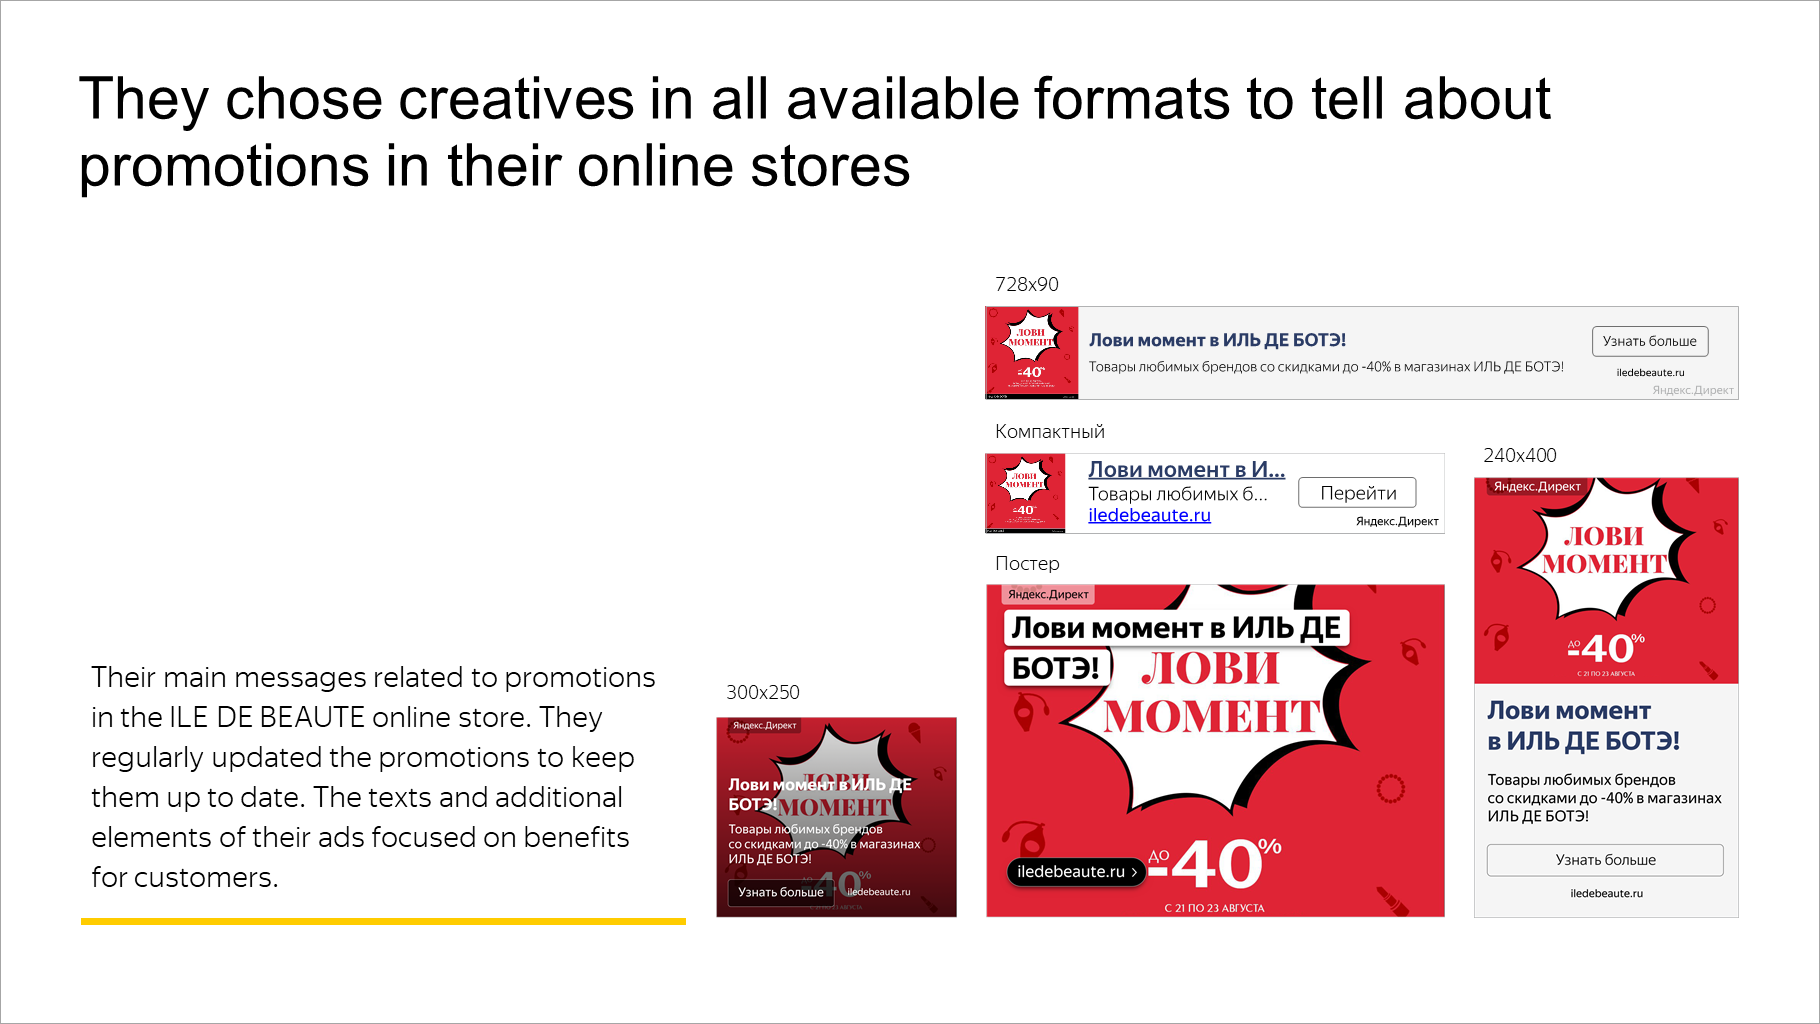 They chose creatives in all available formats to tell about promotions in their online stores